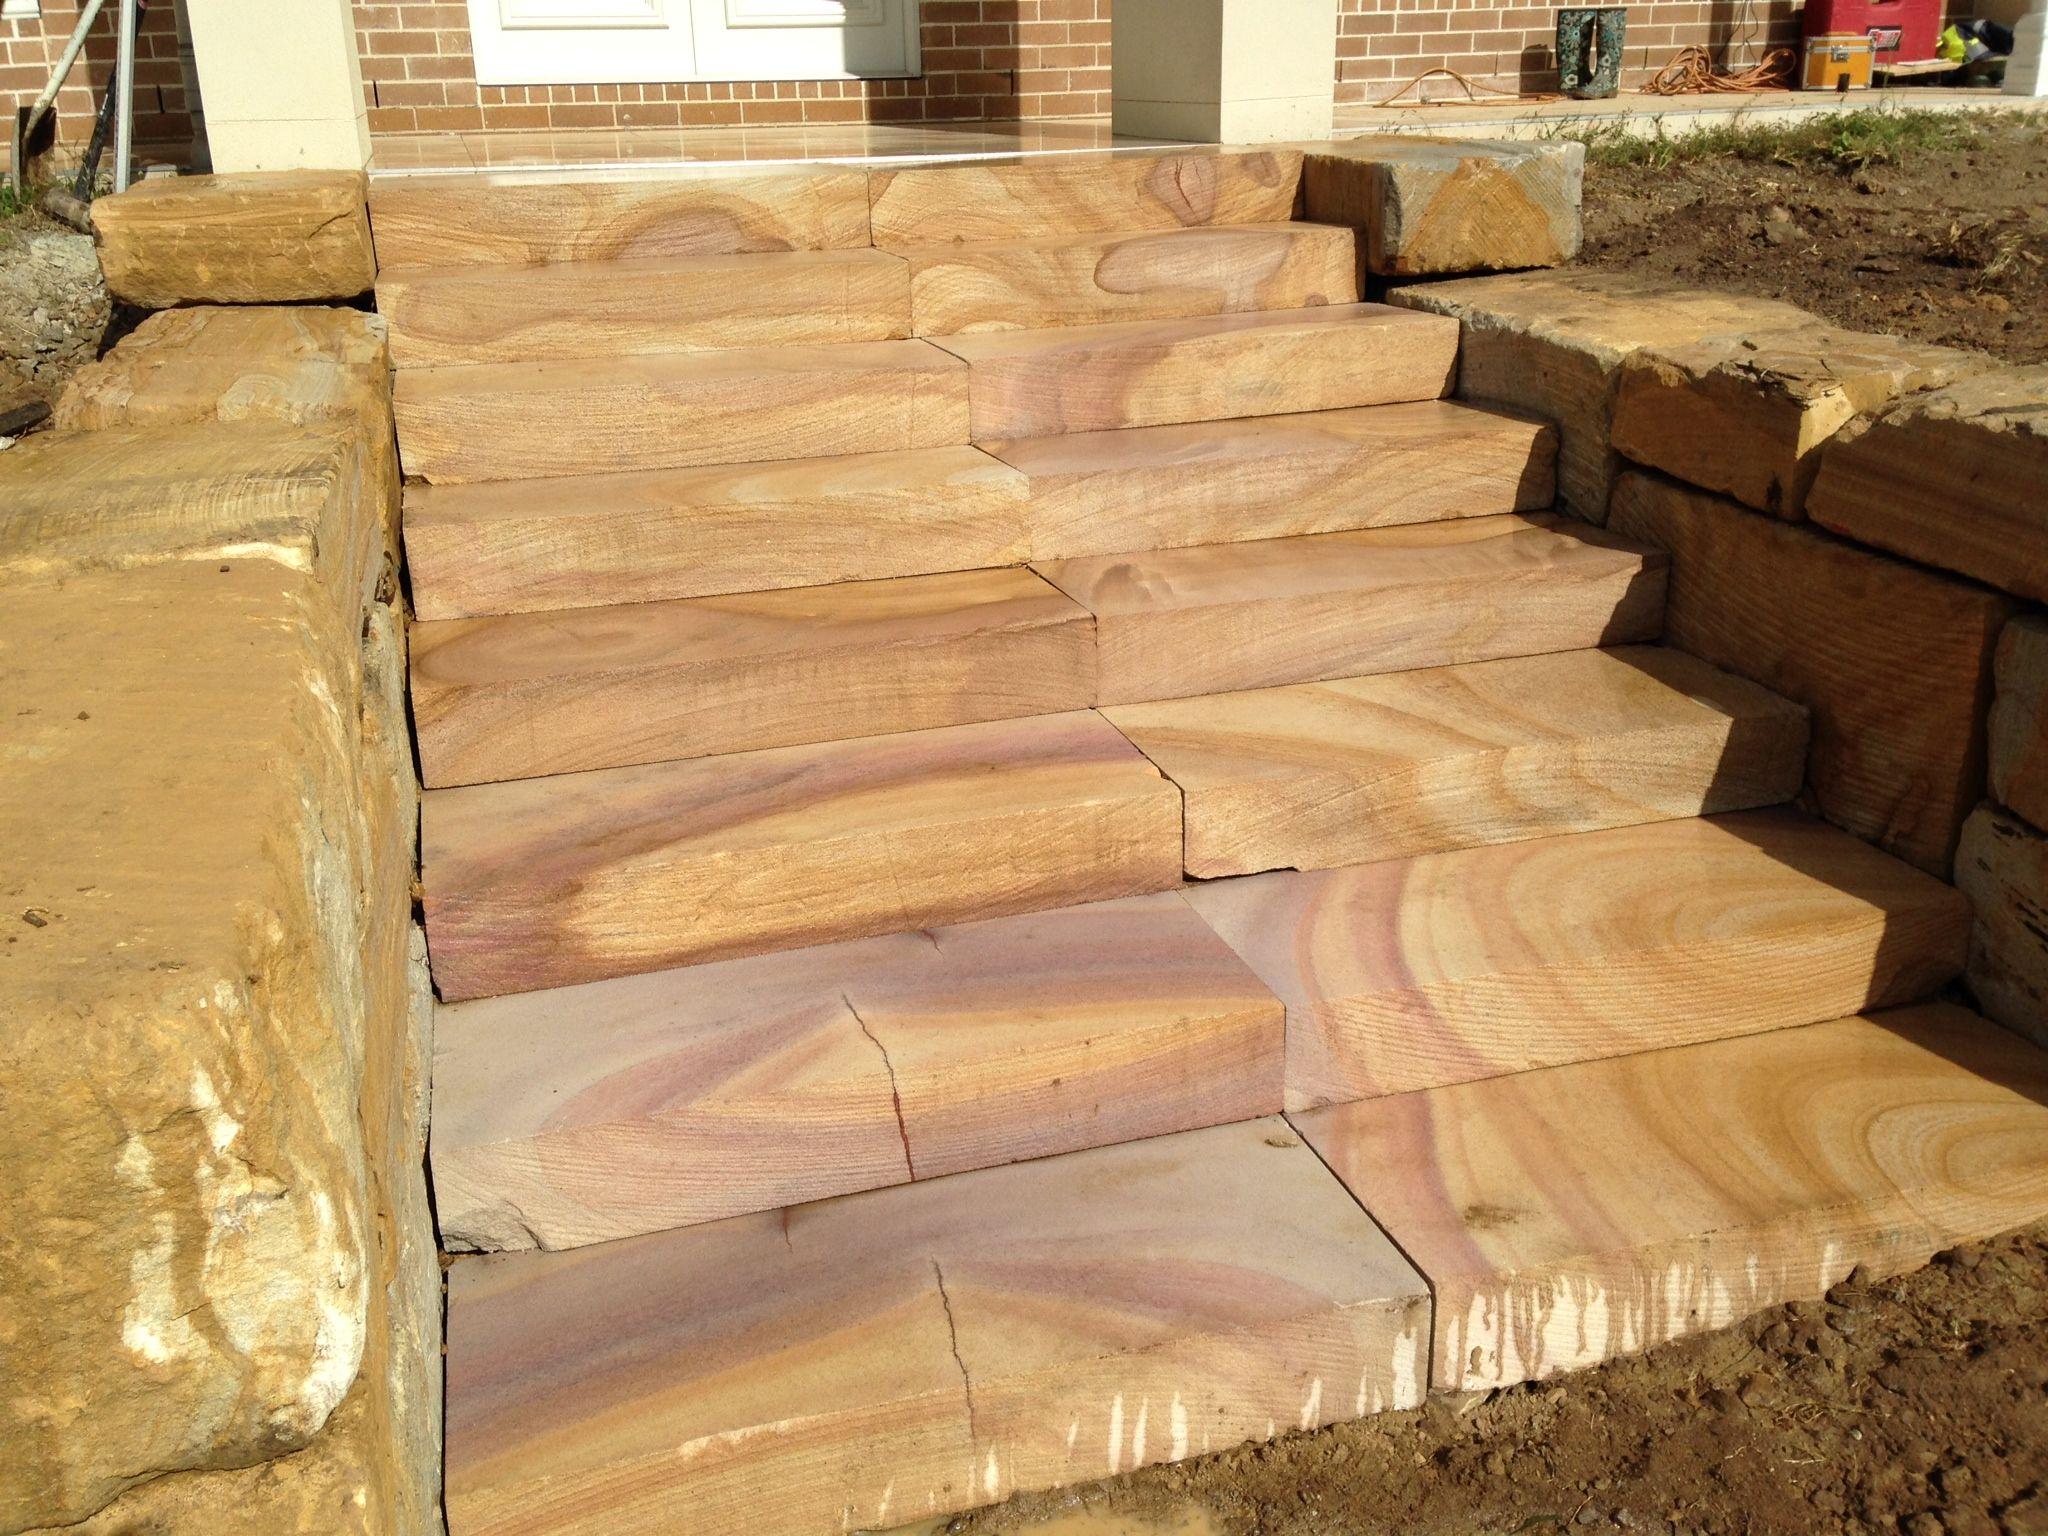 Diamond sawn sandstone steps for a front entrance ...